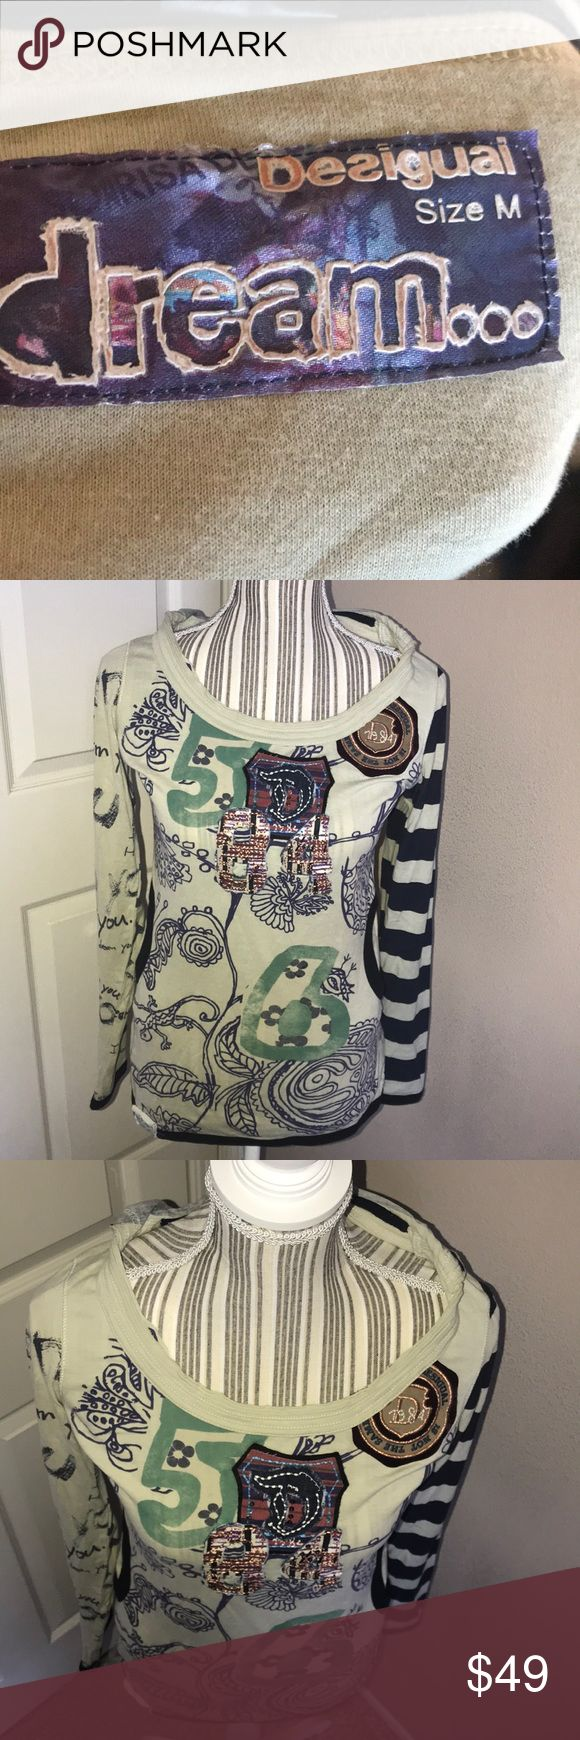 Cozy Dream Hooded Long-sleeve Super high quality. Comfortable. So much effort and time went into the detail of this beautiful long sleeve hooded top. Coziness factor is 100%. Adorable factor is 100%. bought at a cute little boutique in Encinitas, California. Gently used in great condition. Desigual Tops Sweatshirts & Hoodies